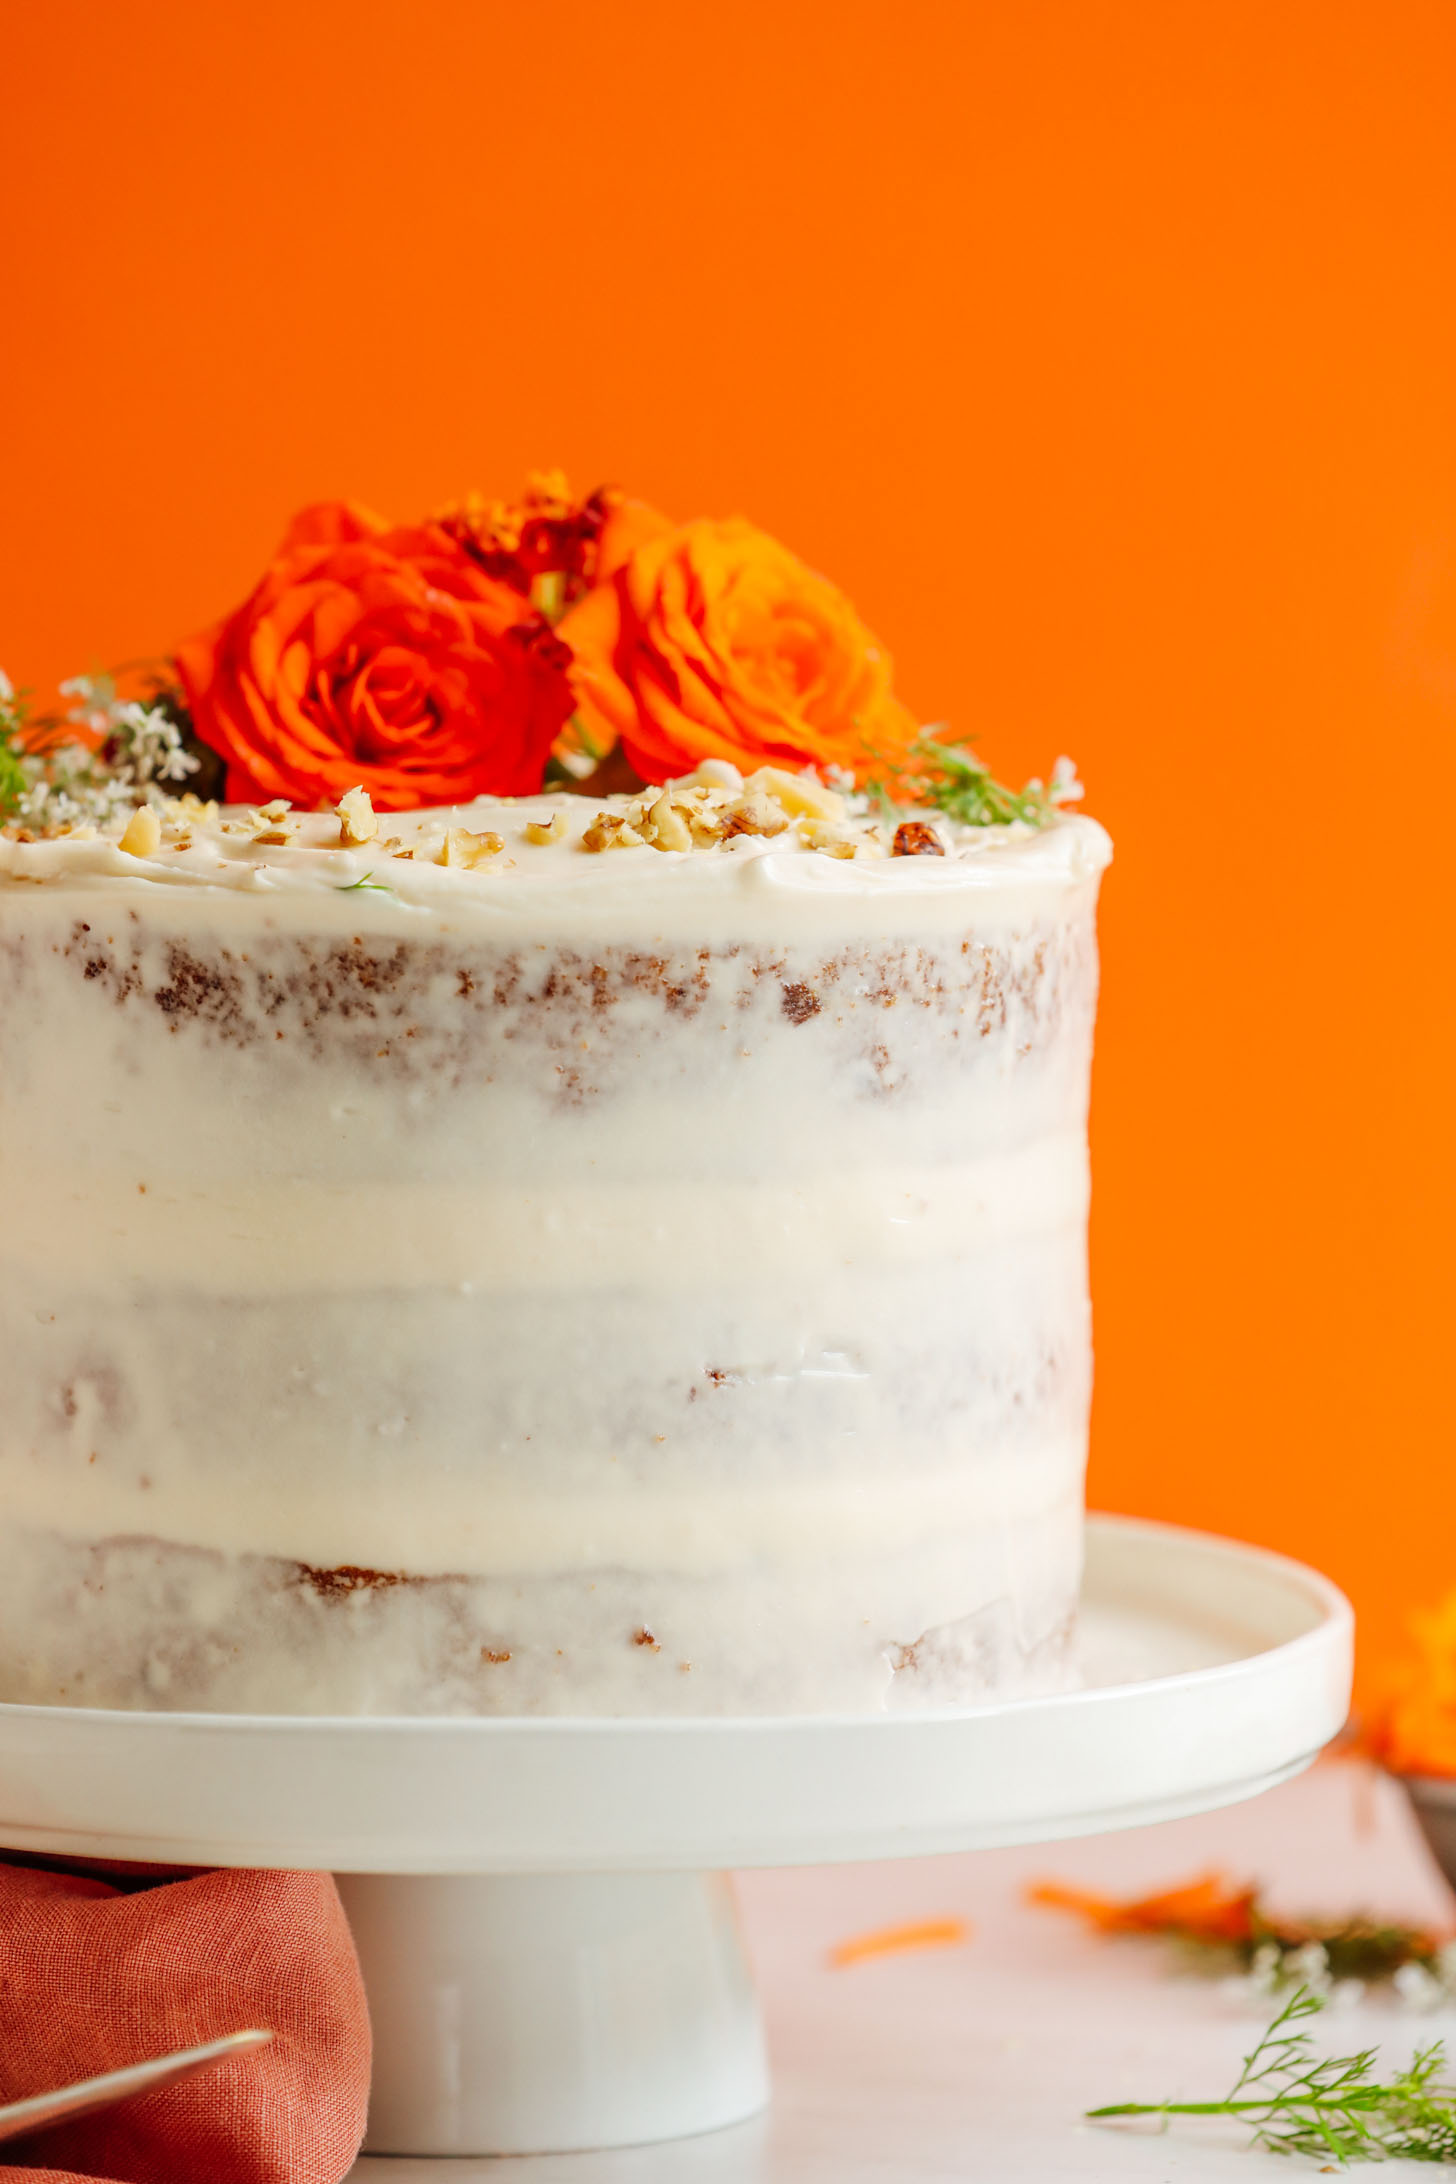 Lightly frosted Vegan Gluten-Free Carrot Cake decorated with fresh flowers and chopped nuts